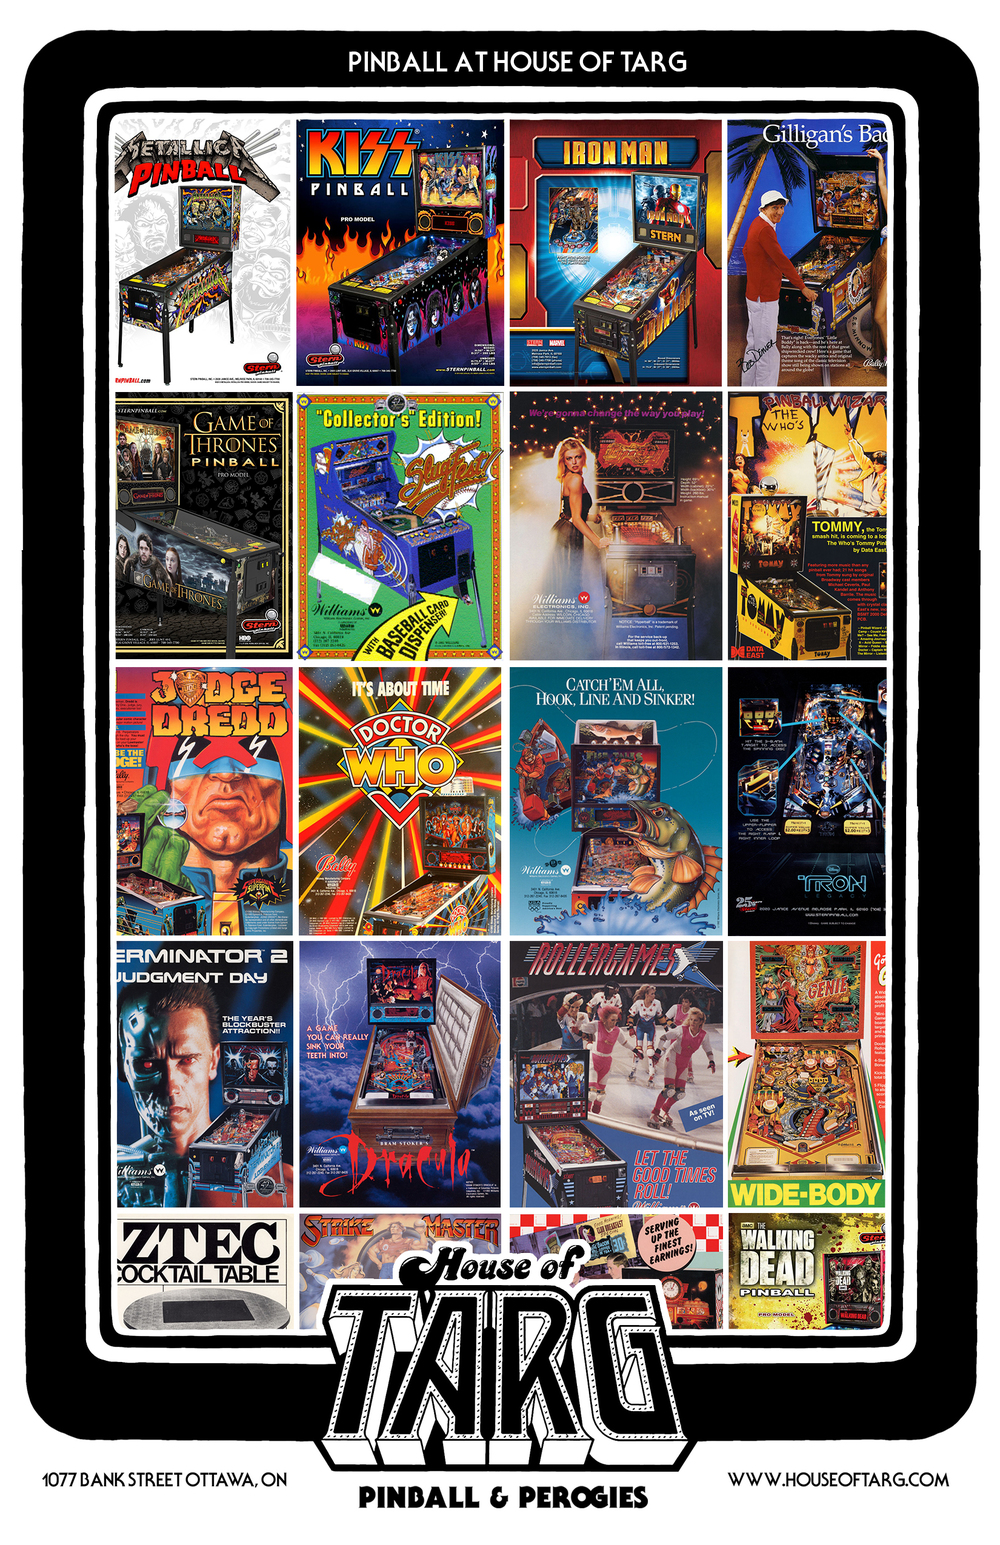 Current Pinball Machines at TARG